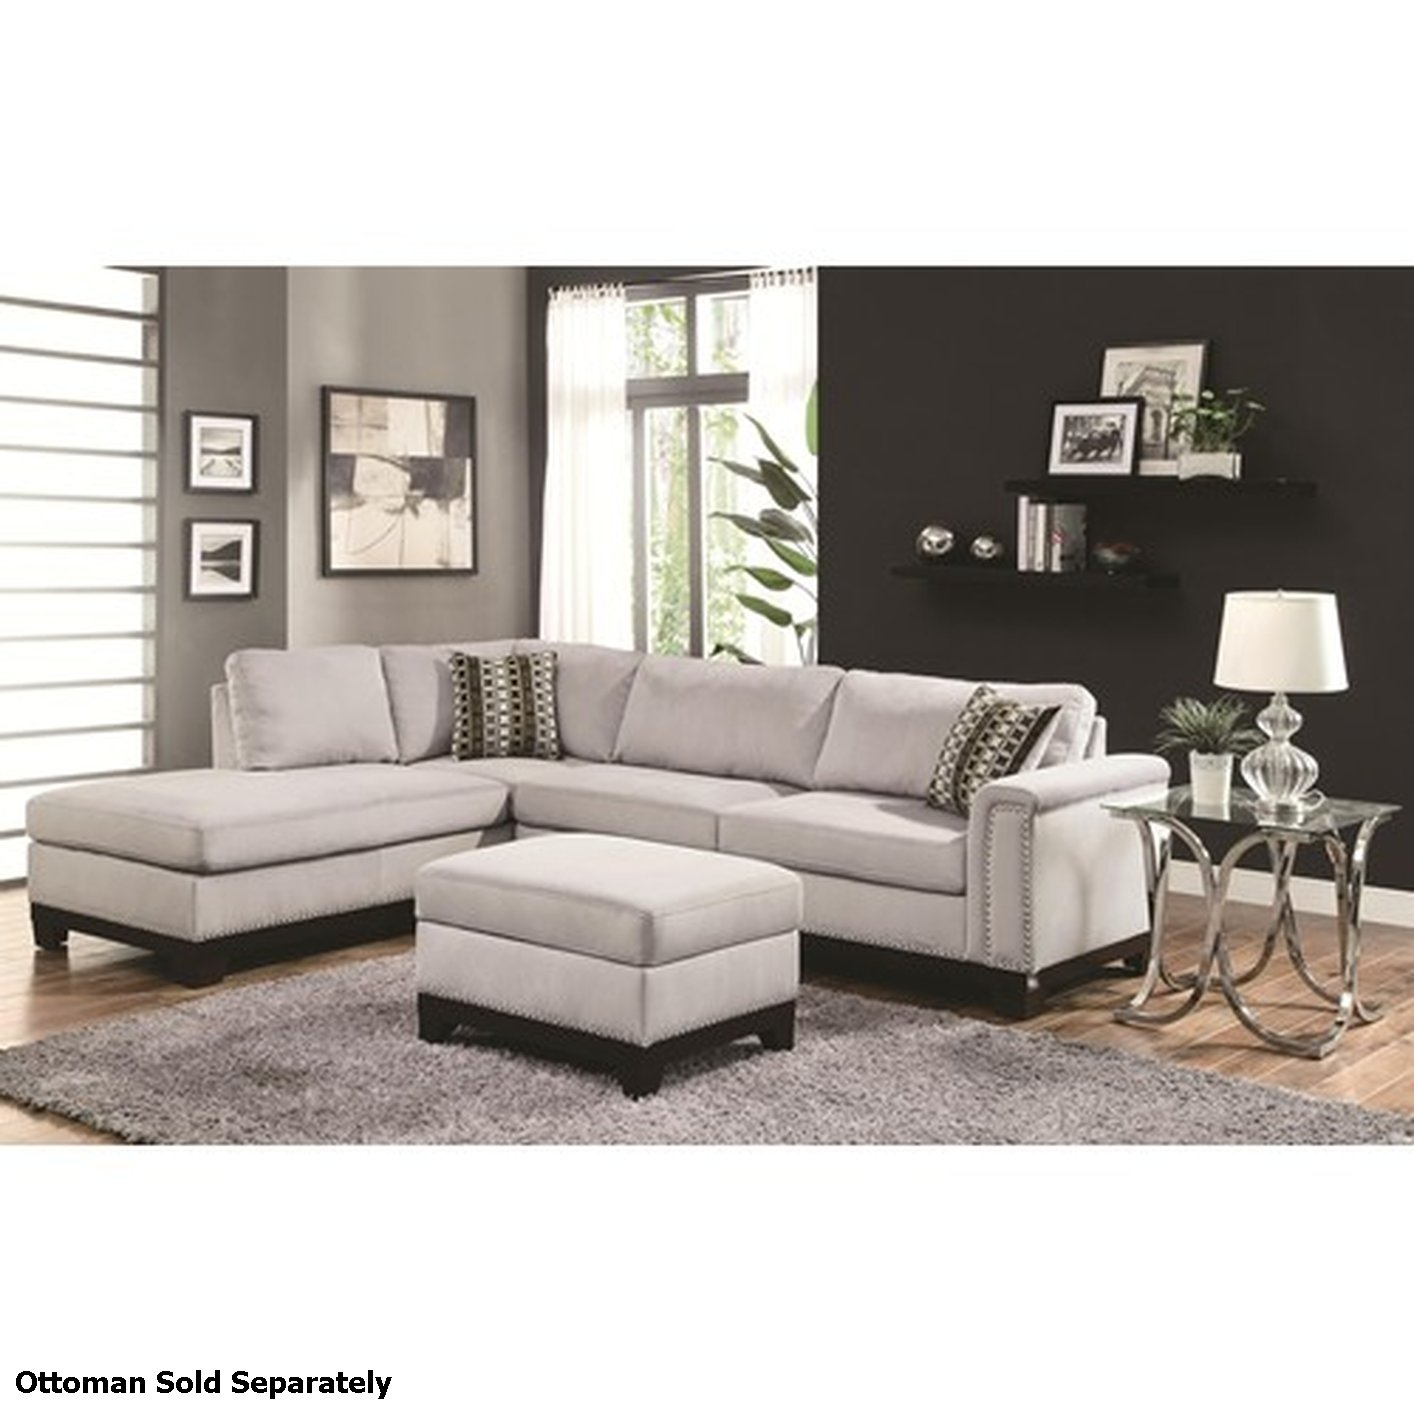 Coaster mason 503615 grey fabric sectional sofa steal a - Sofa gris como pintar las paredes ...